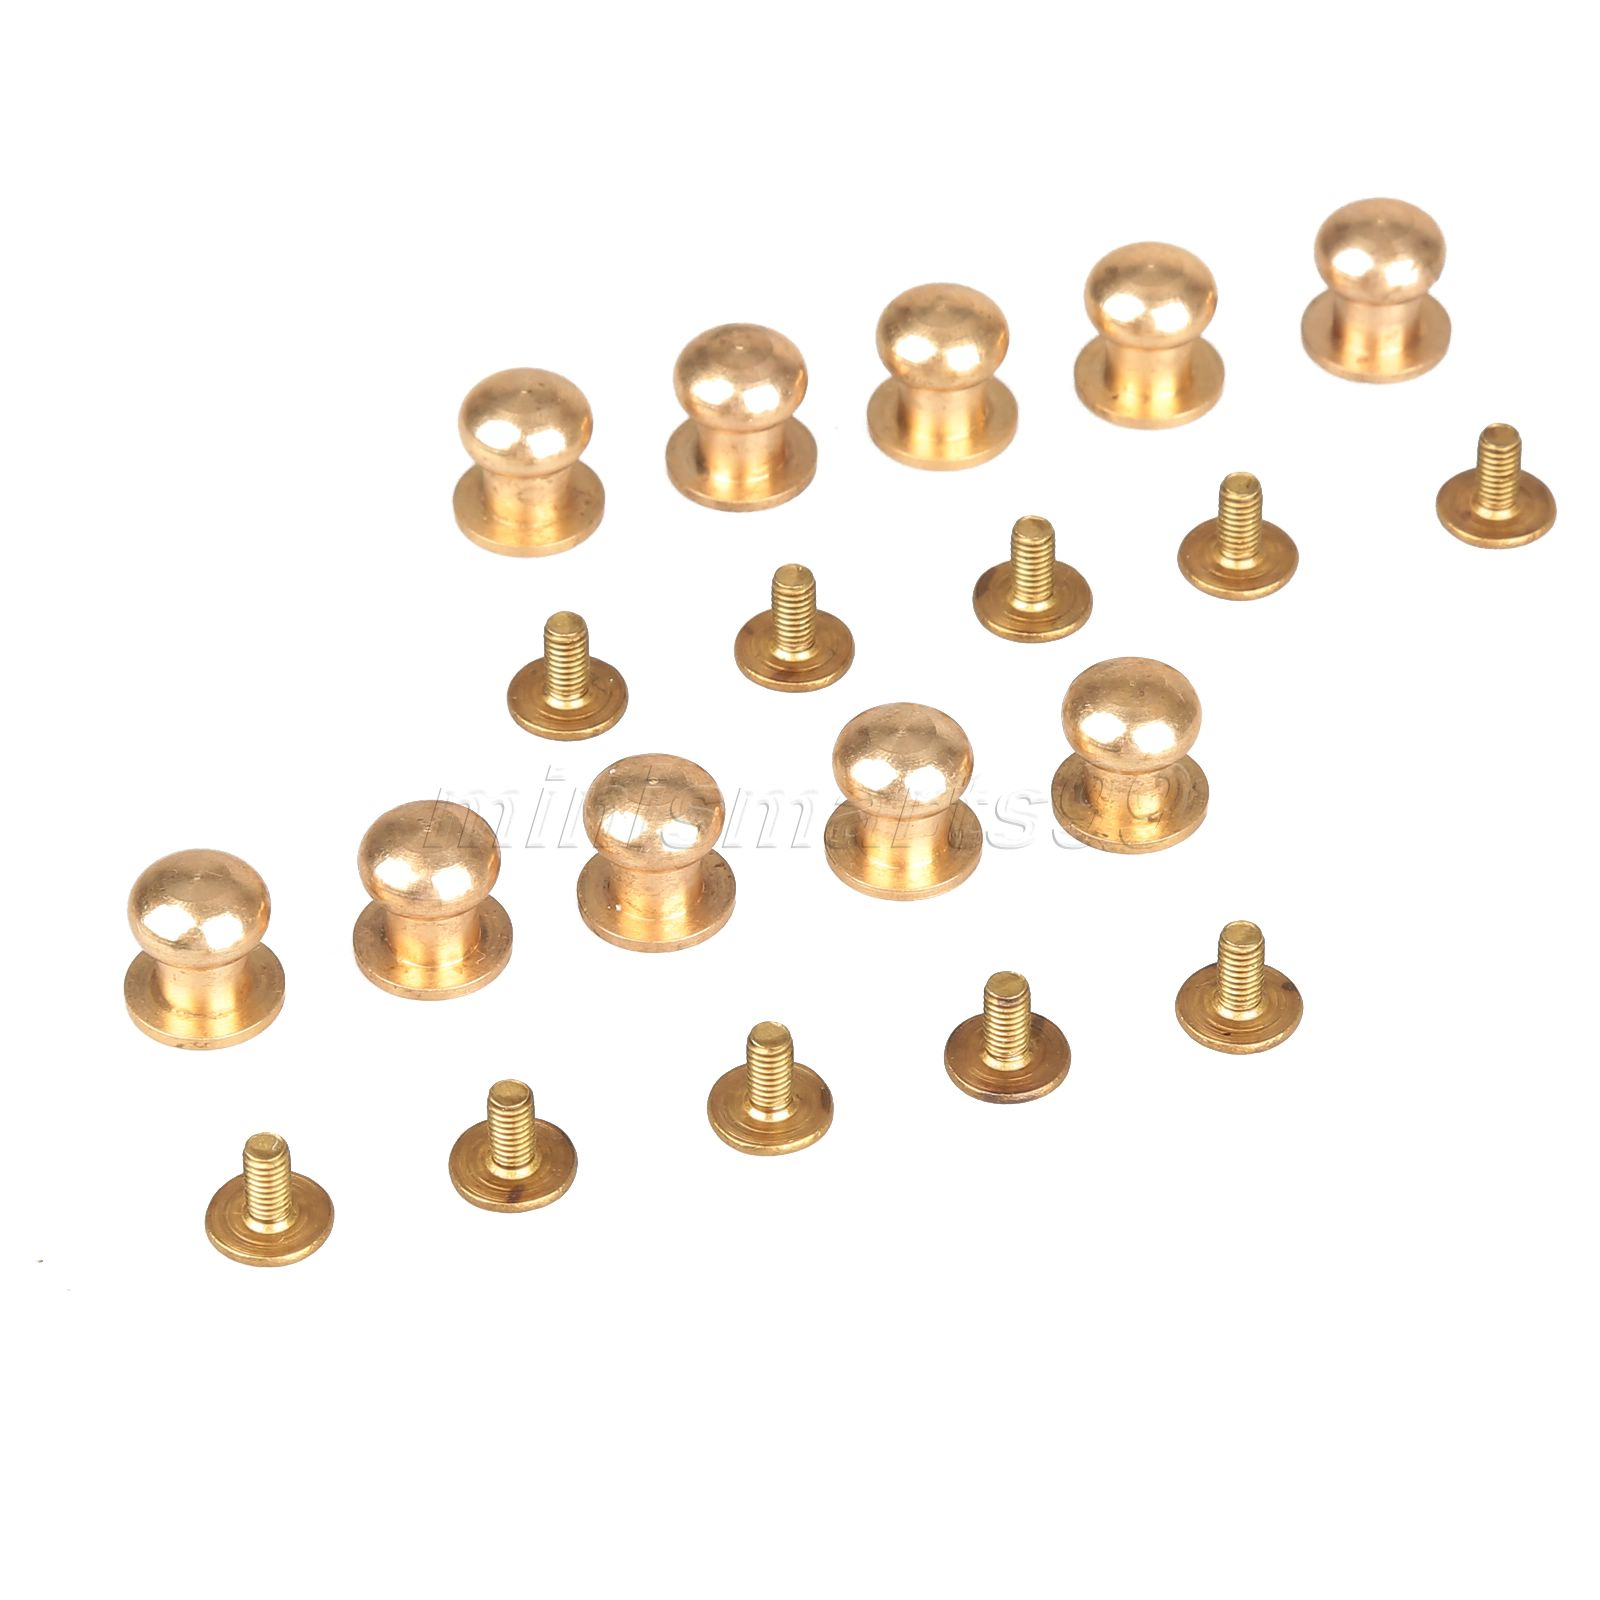 10pcs 5/6/7/8/9/10mm Solid Brass Belt Bag Screw Rivet Knob Round Button Chicago Screw In Button Studs Leather Craft Accessories(China (Mainland))